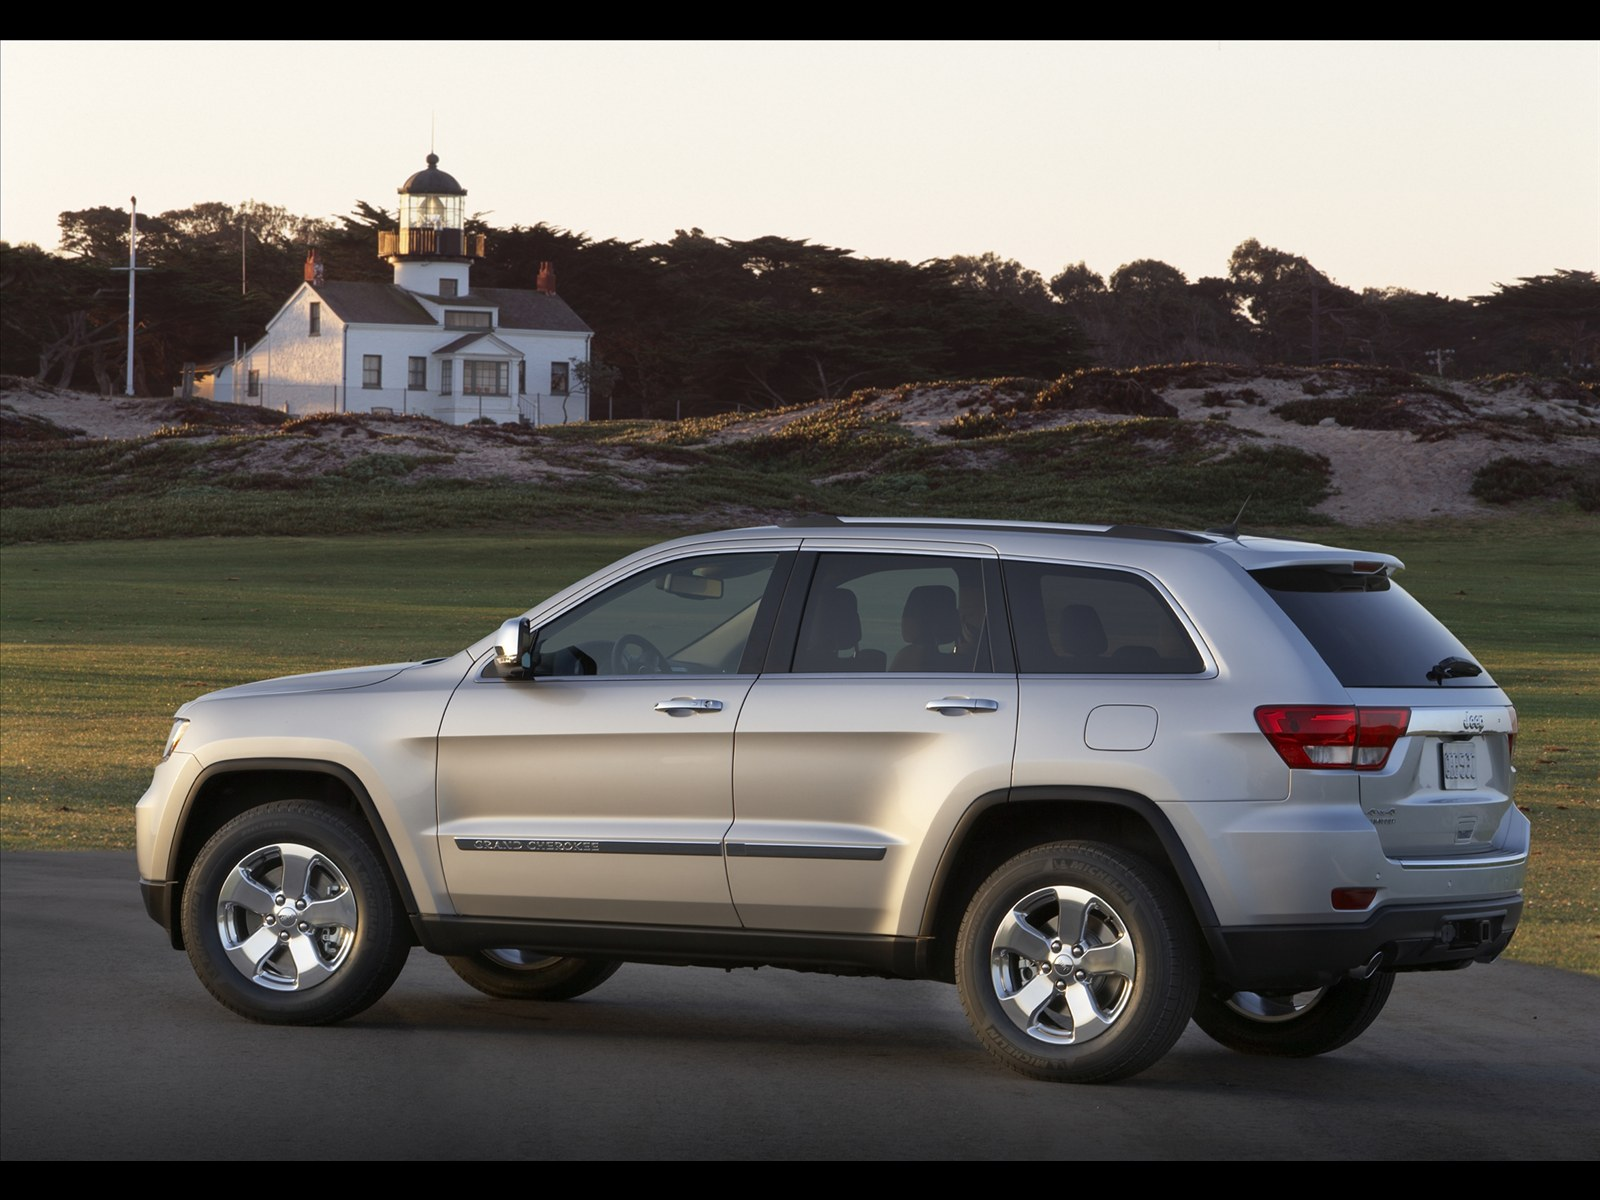 jeep grand cherokee 2011 car pictures wallpaper image photo free. Cars Review. Best American Auto & Cars Review